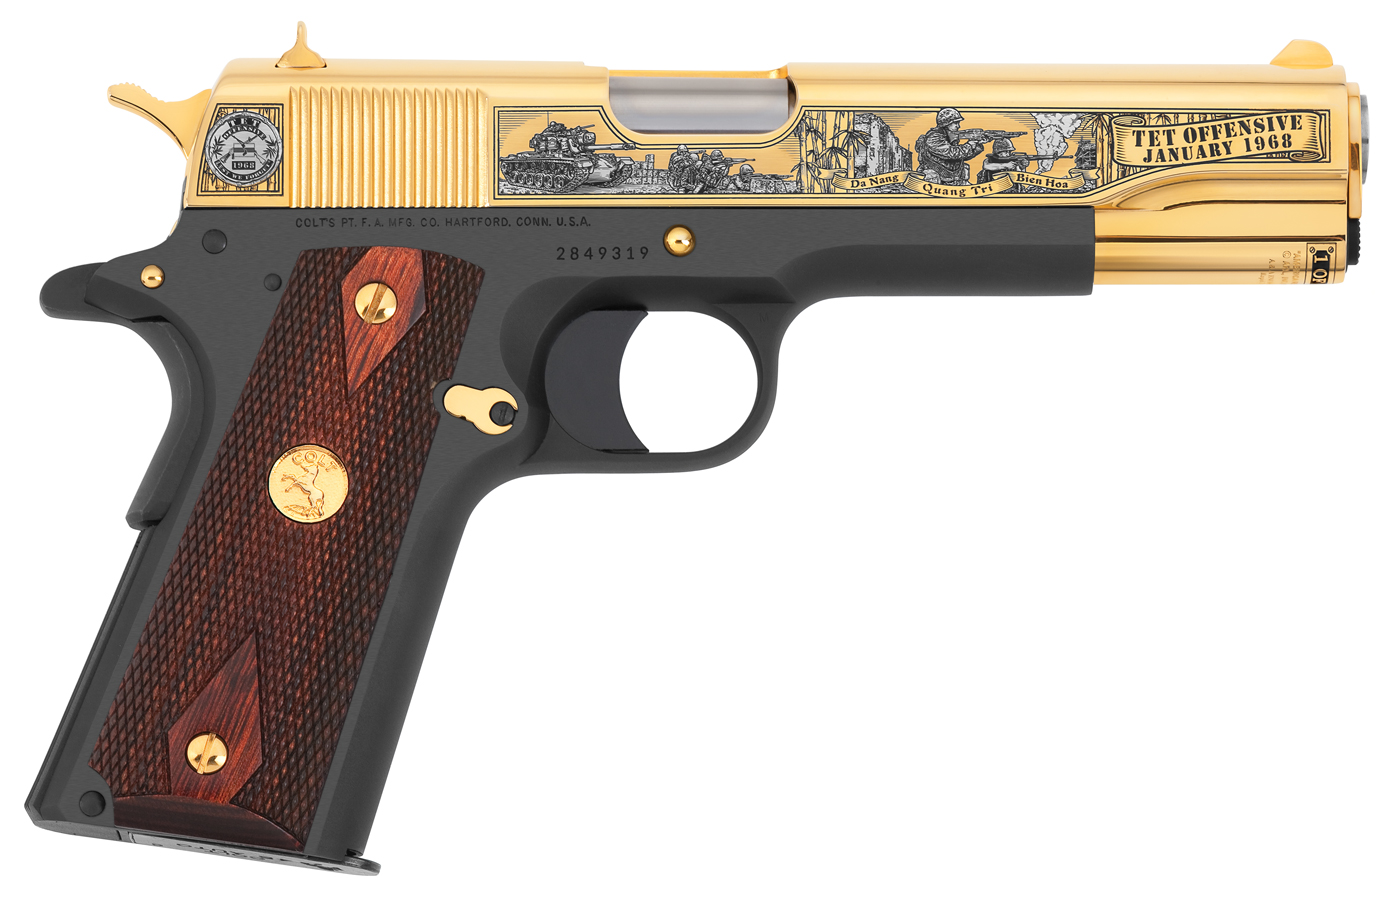 Tet 50th Anniversary Tribute Pistol